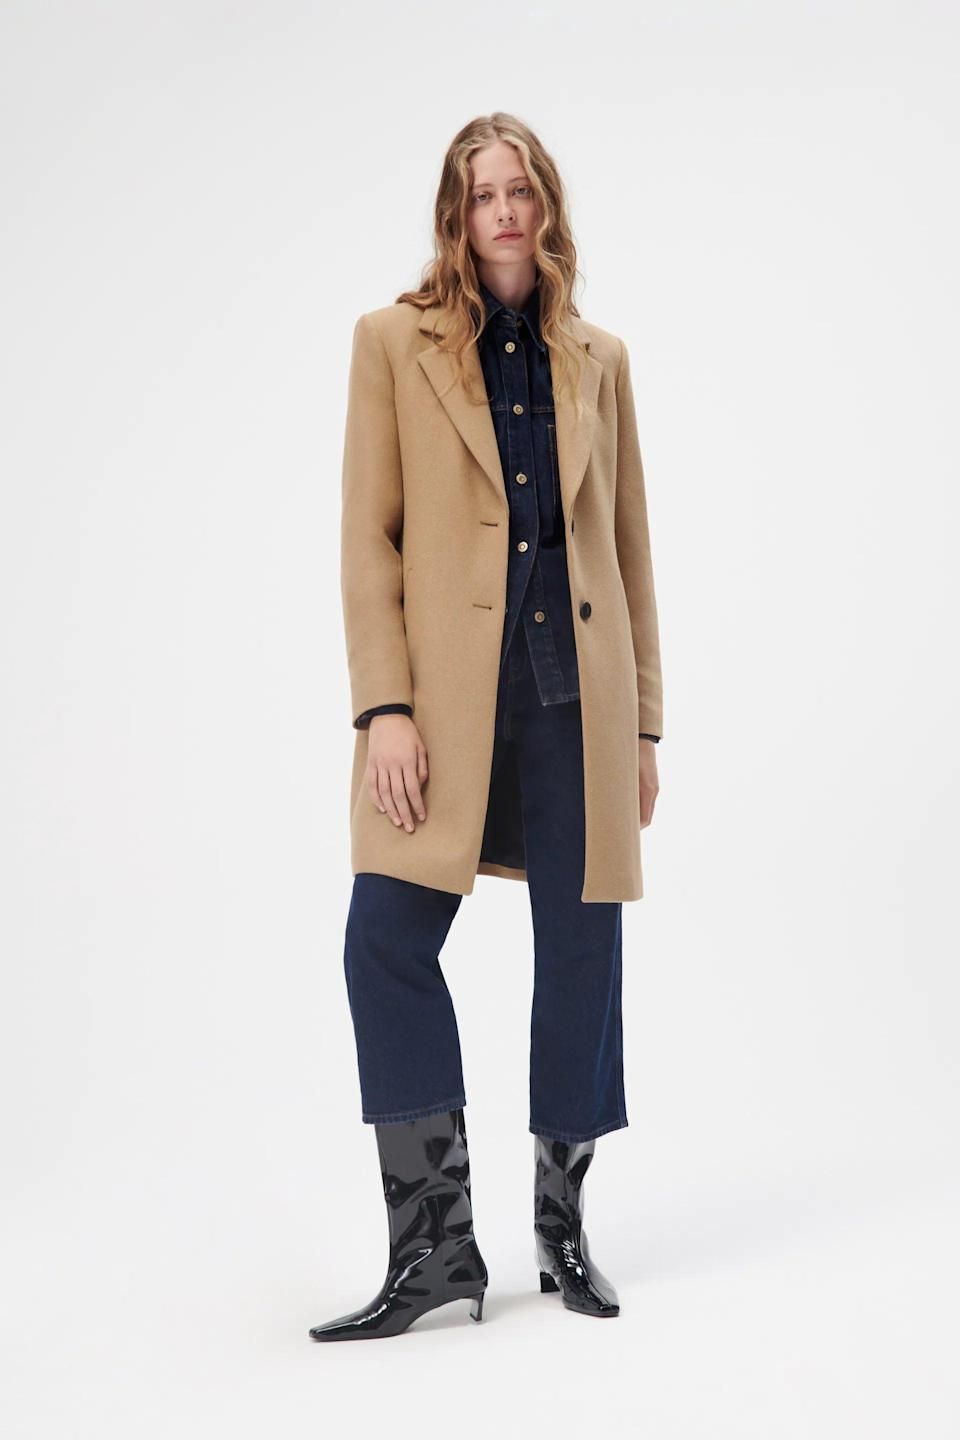 <p>This <span>Zara Wool Coat</span> ($120) will finish off any look with ease and put-togetherness. We like the laidback vibe oozing from the construction.</p>